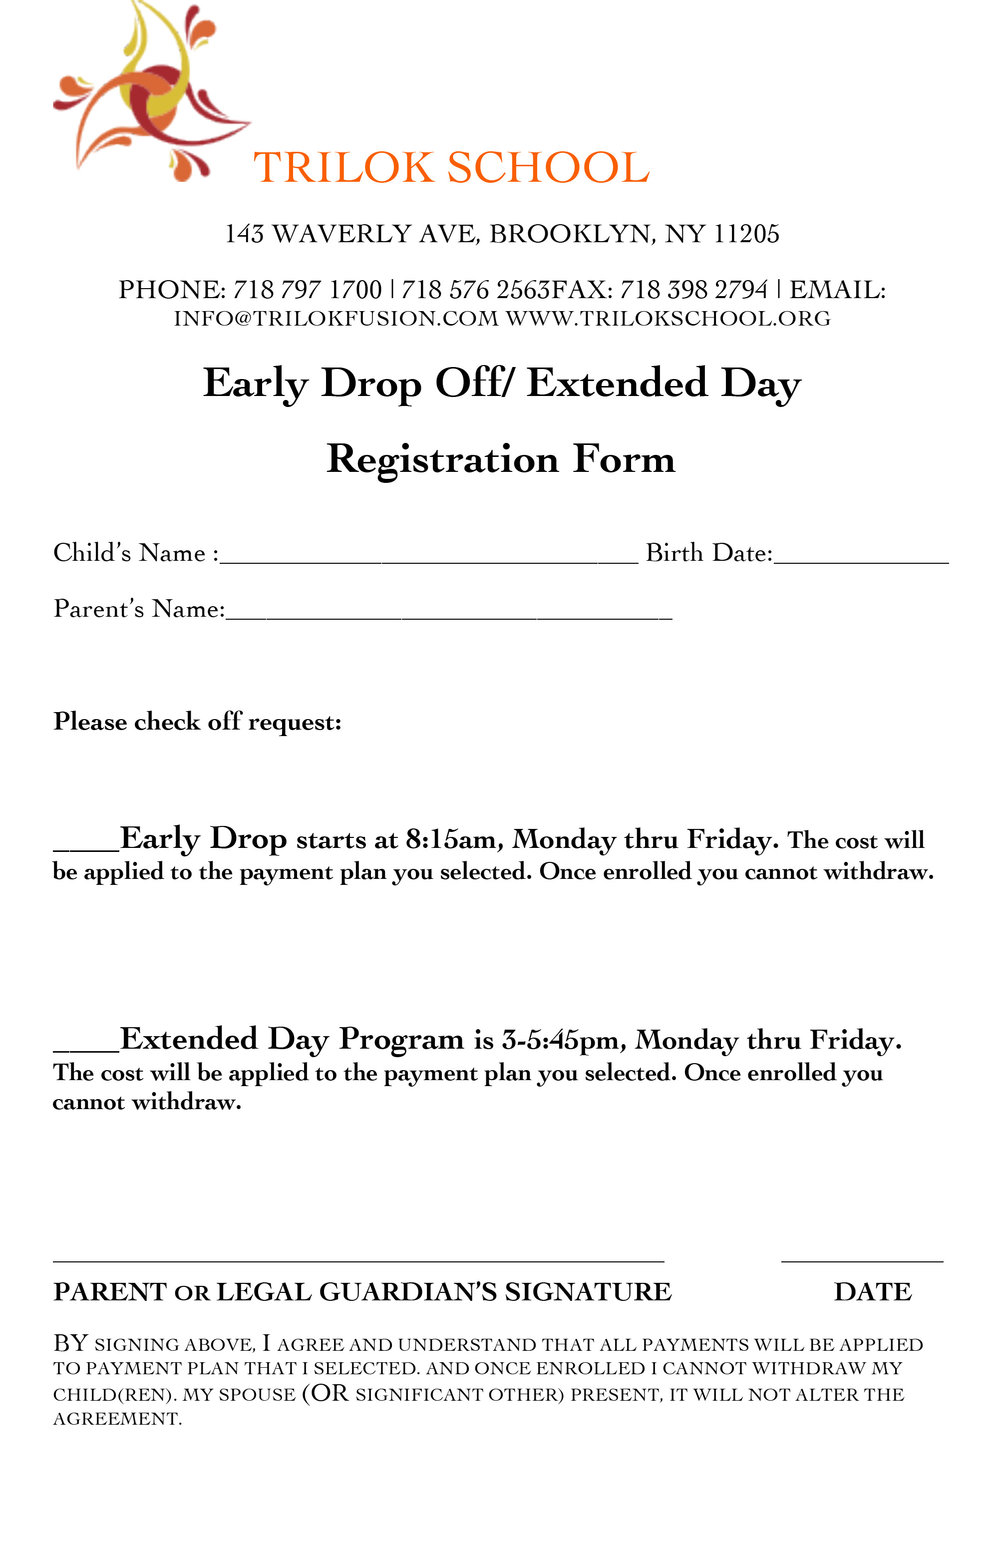 Early Drop Extended Day Reg Form.jpg